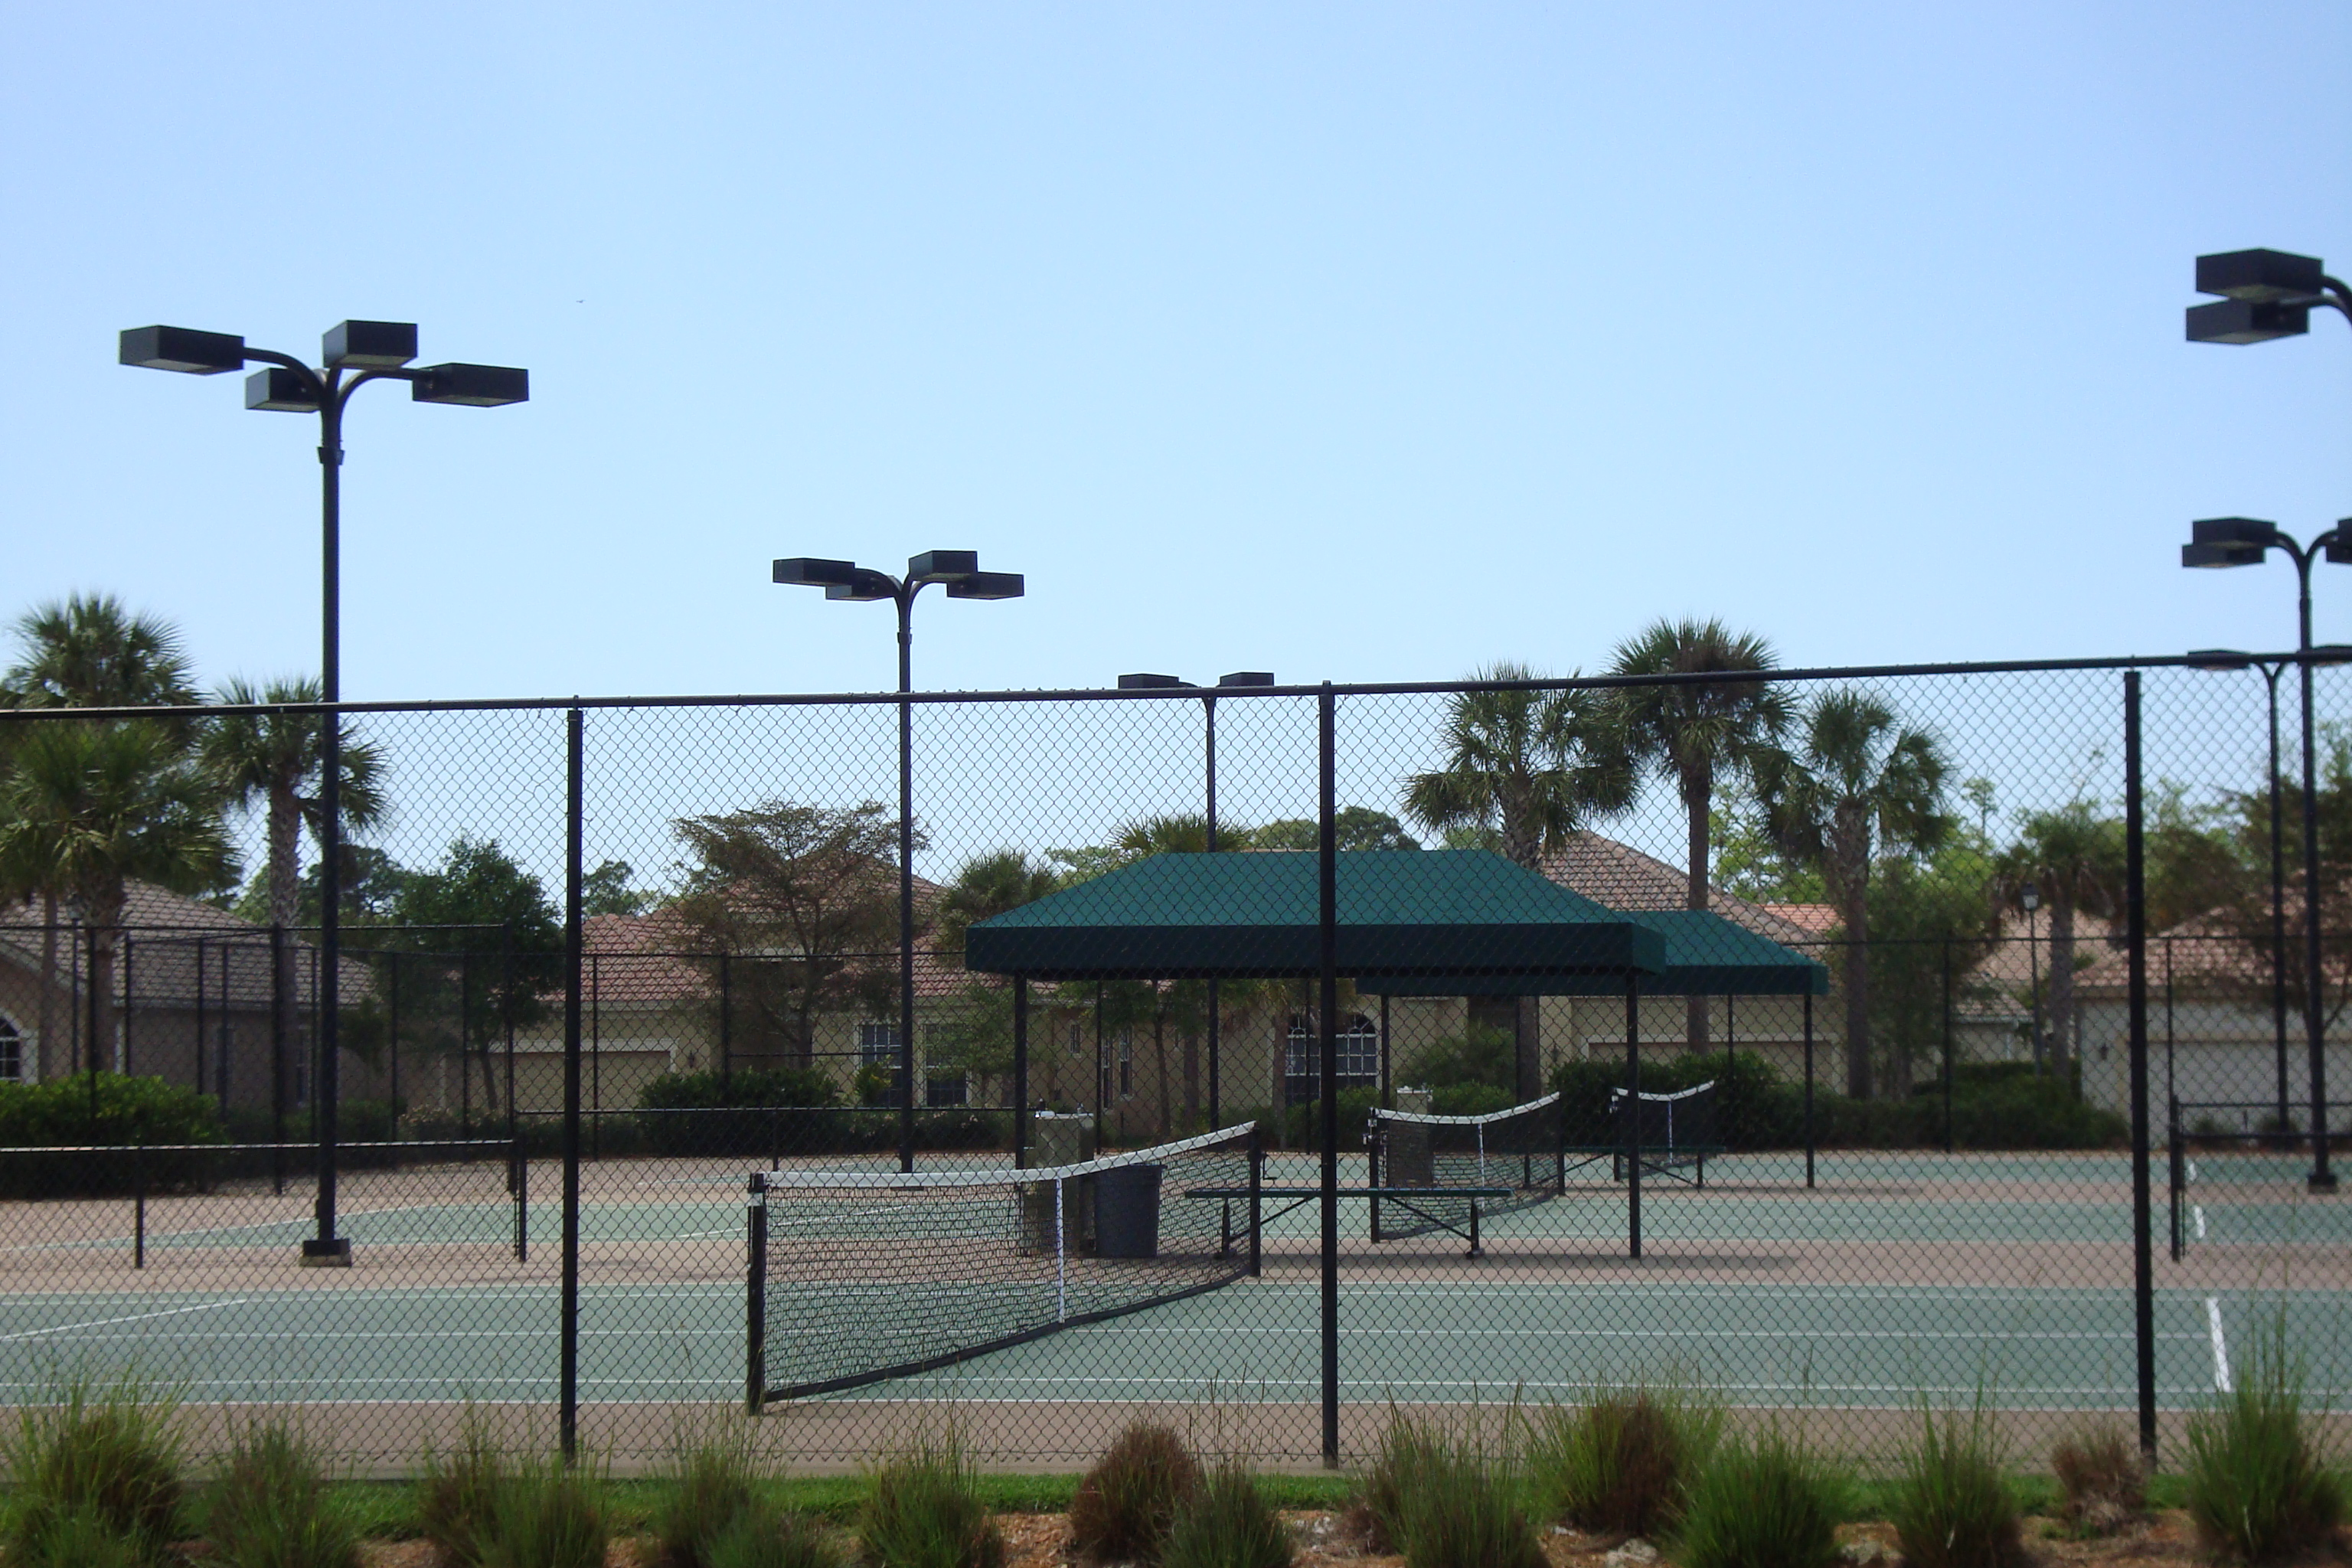 Tennis Court at Delasol in Naples, Florida.